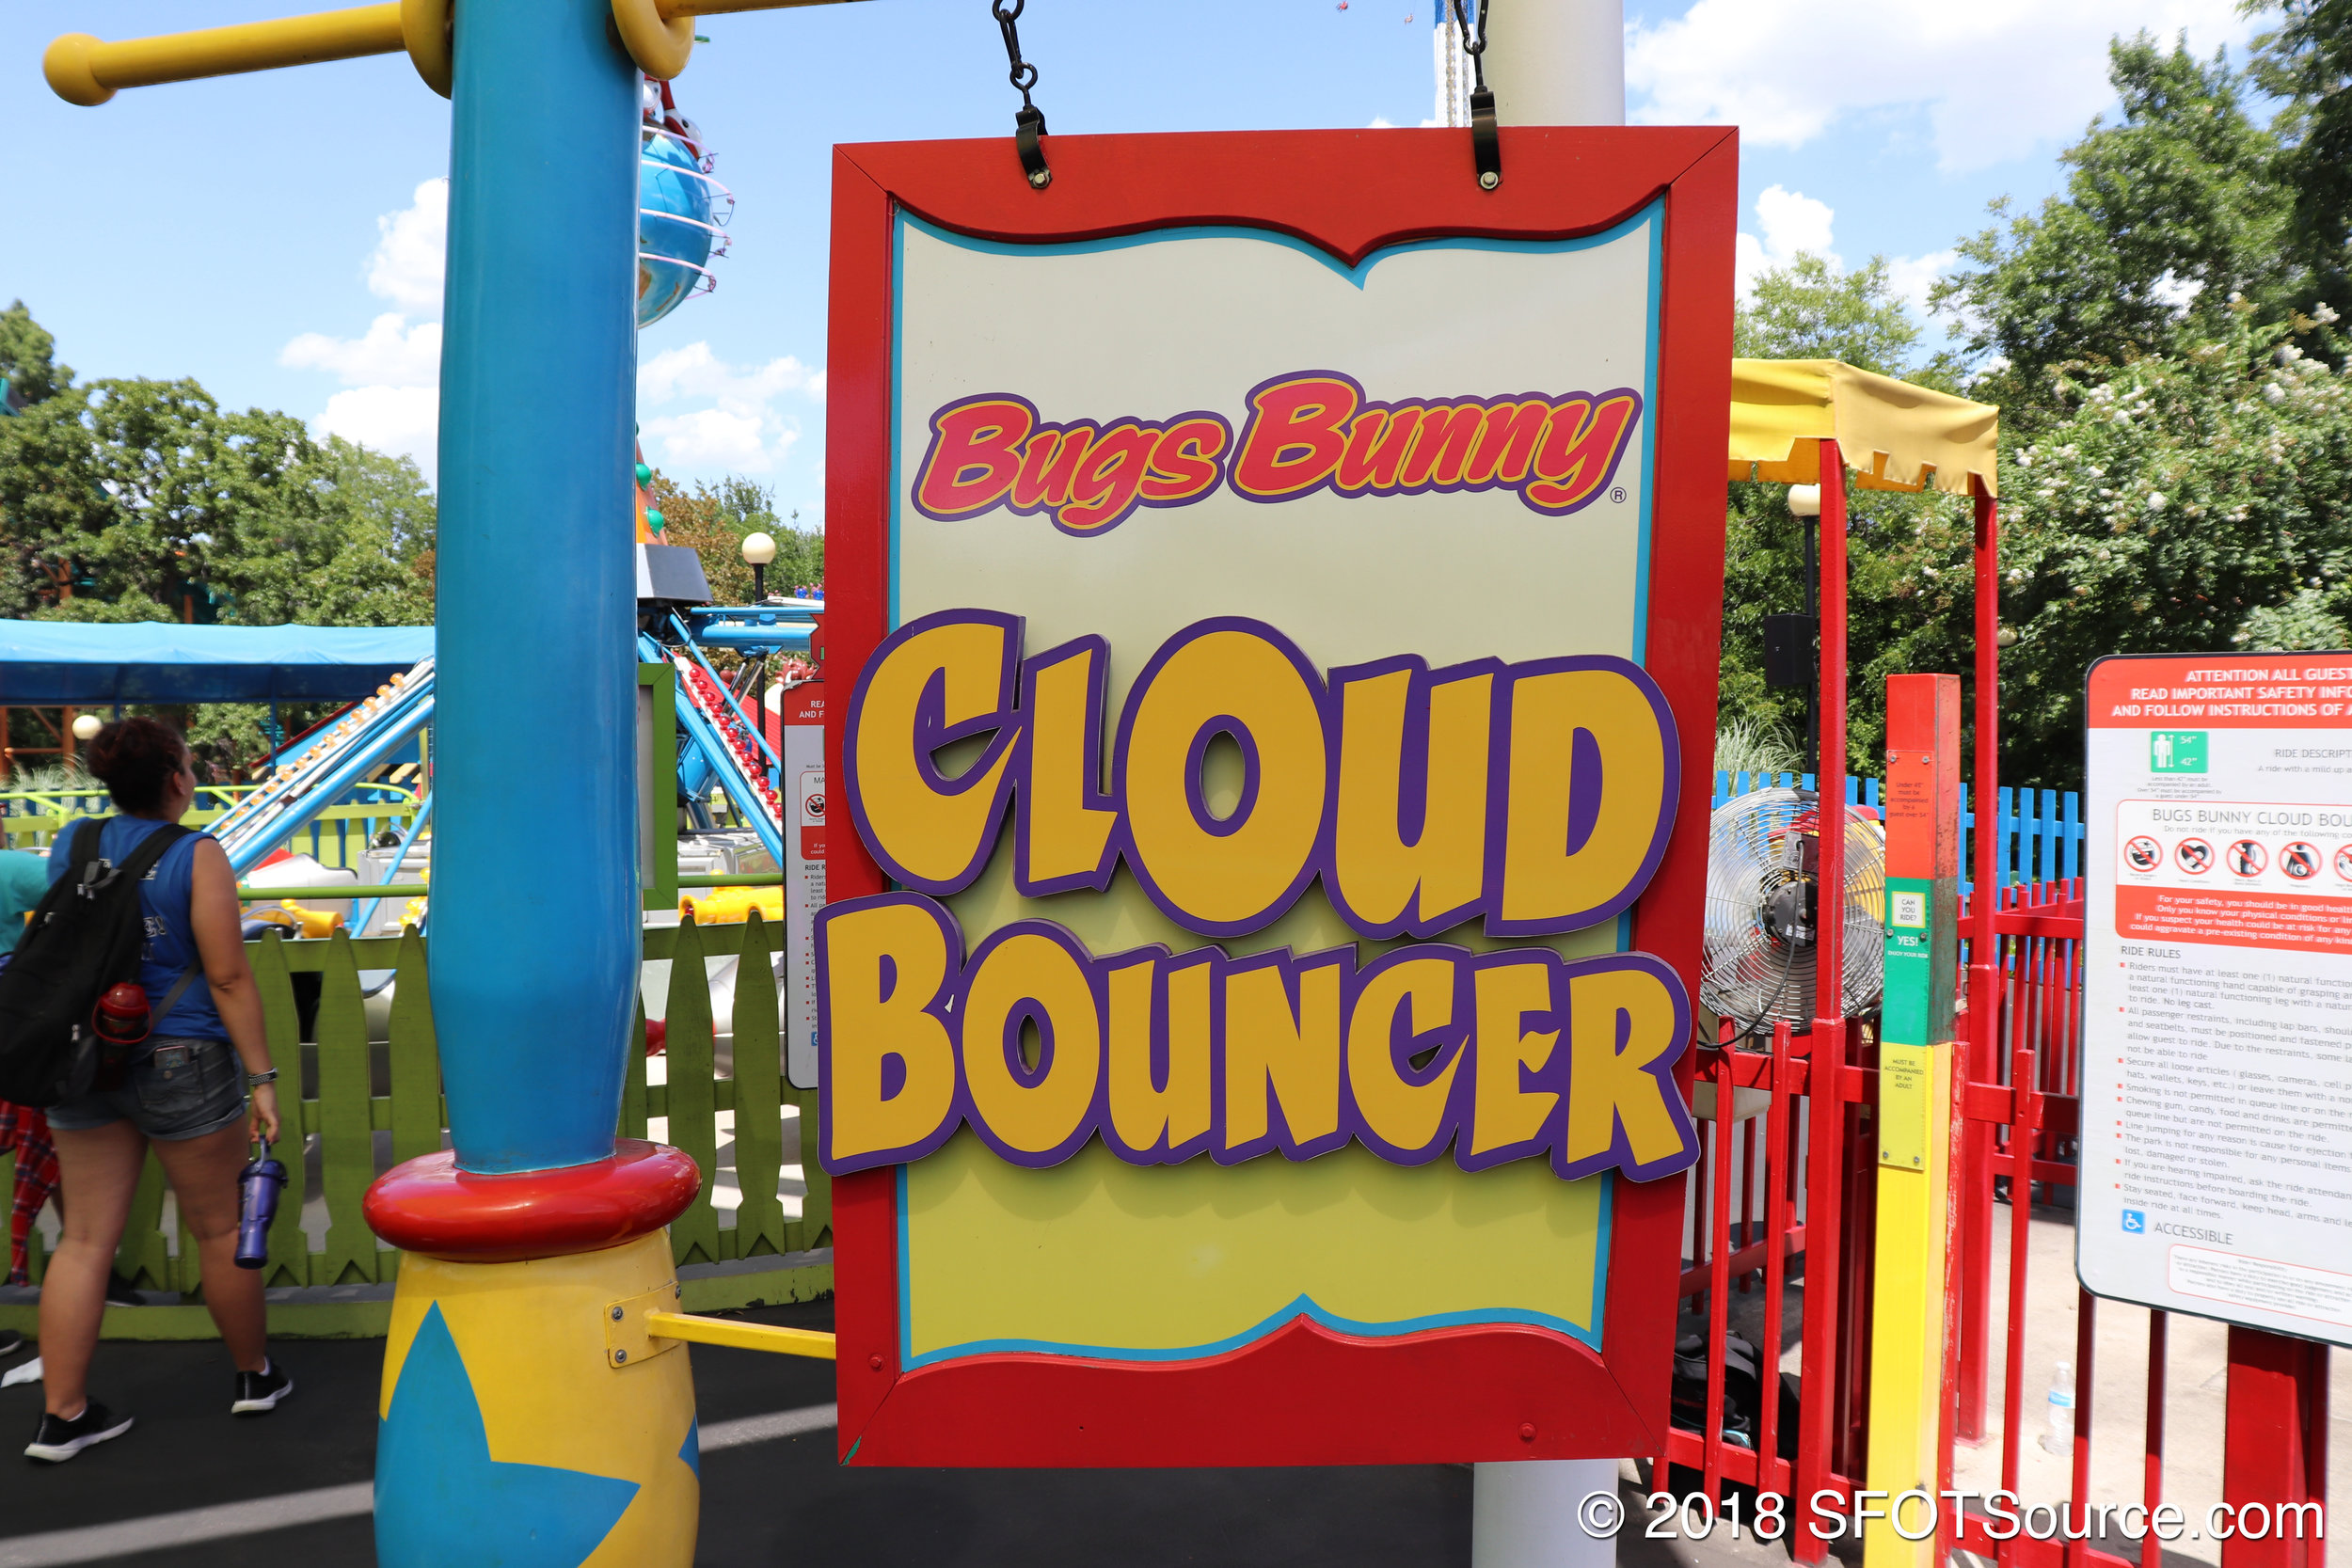 The main entrance to Bugs Bunny Cloud Bouncer.